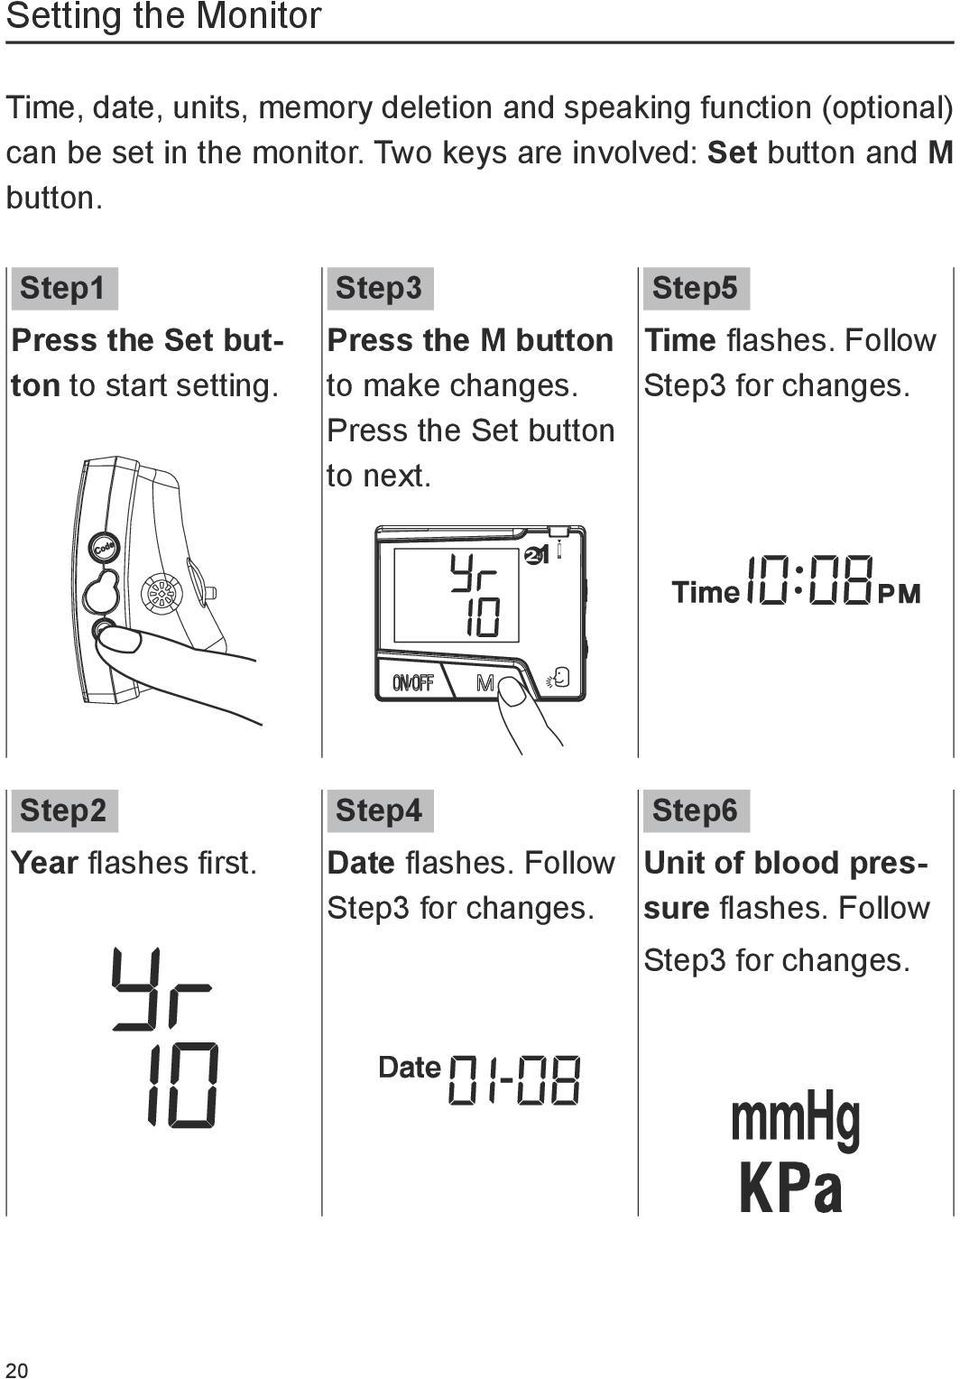 Step3 Press the M button to make changes. Press the Set button to next. Step5 Time flashes.